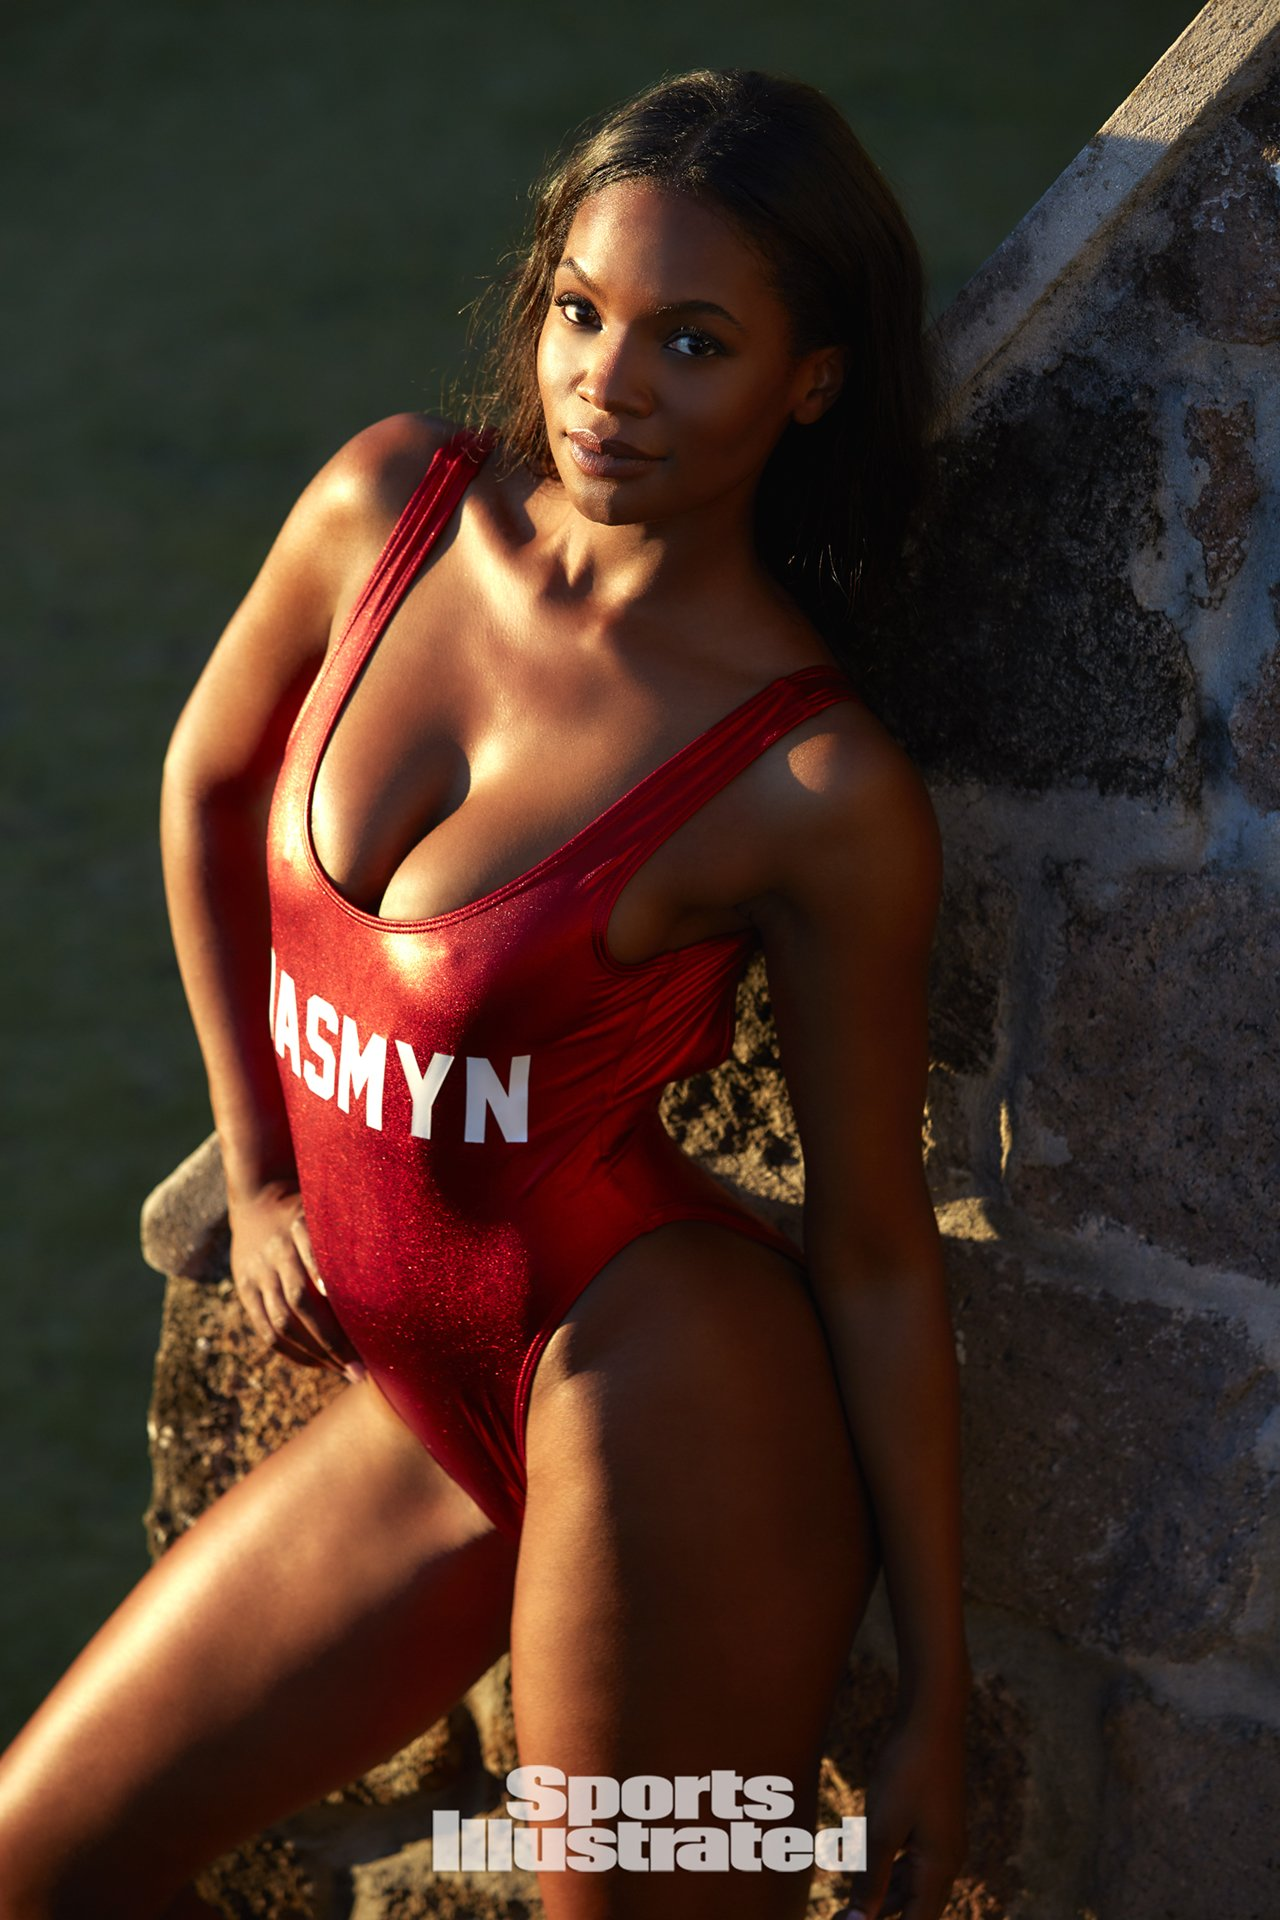 Sports Illustrated Swimsuit Issue 2018 (8).jpg